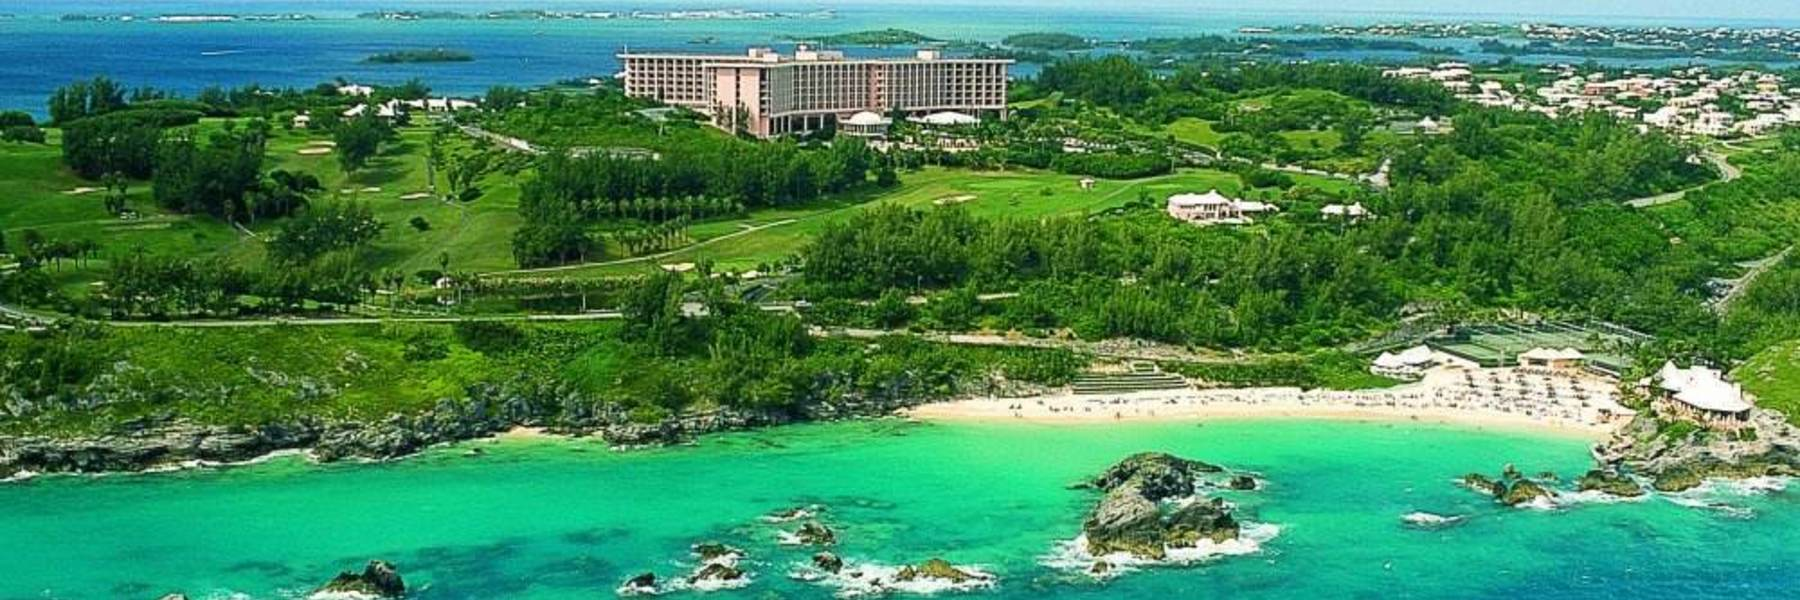 Golf Vacation Package - Fairmont Southampton Summer Golf Around Getaway - $334 per person/per day!